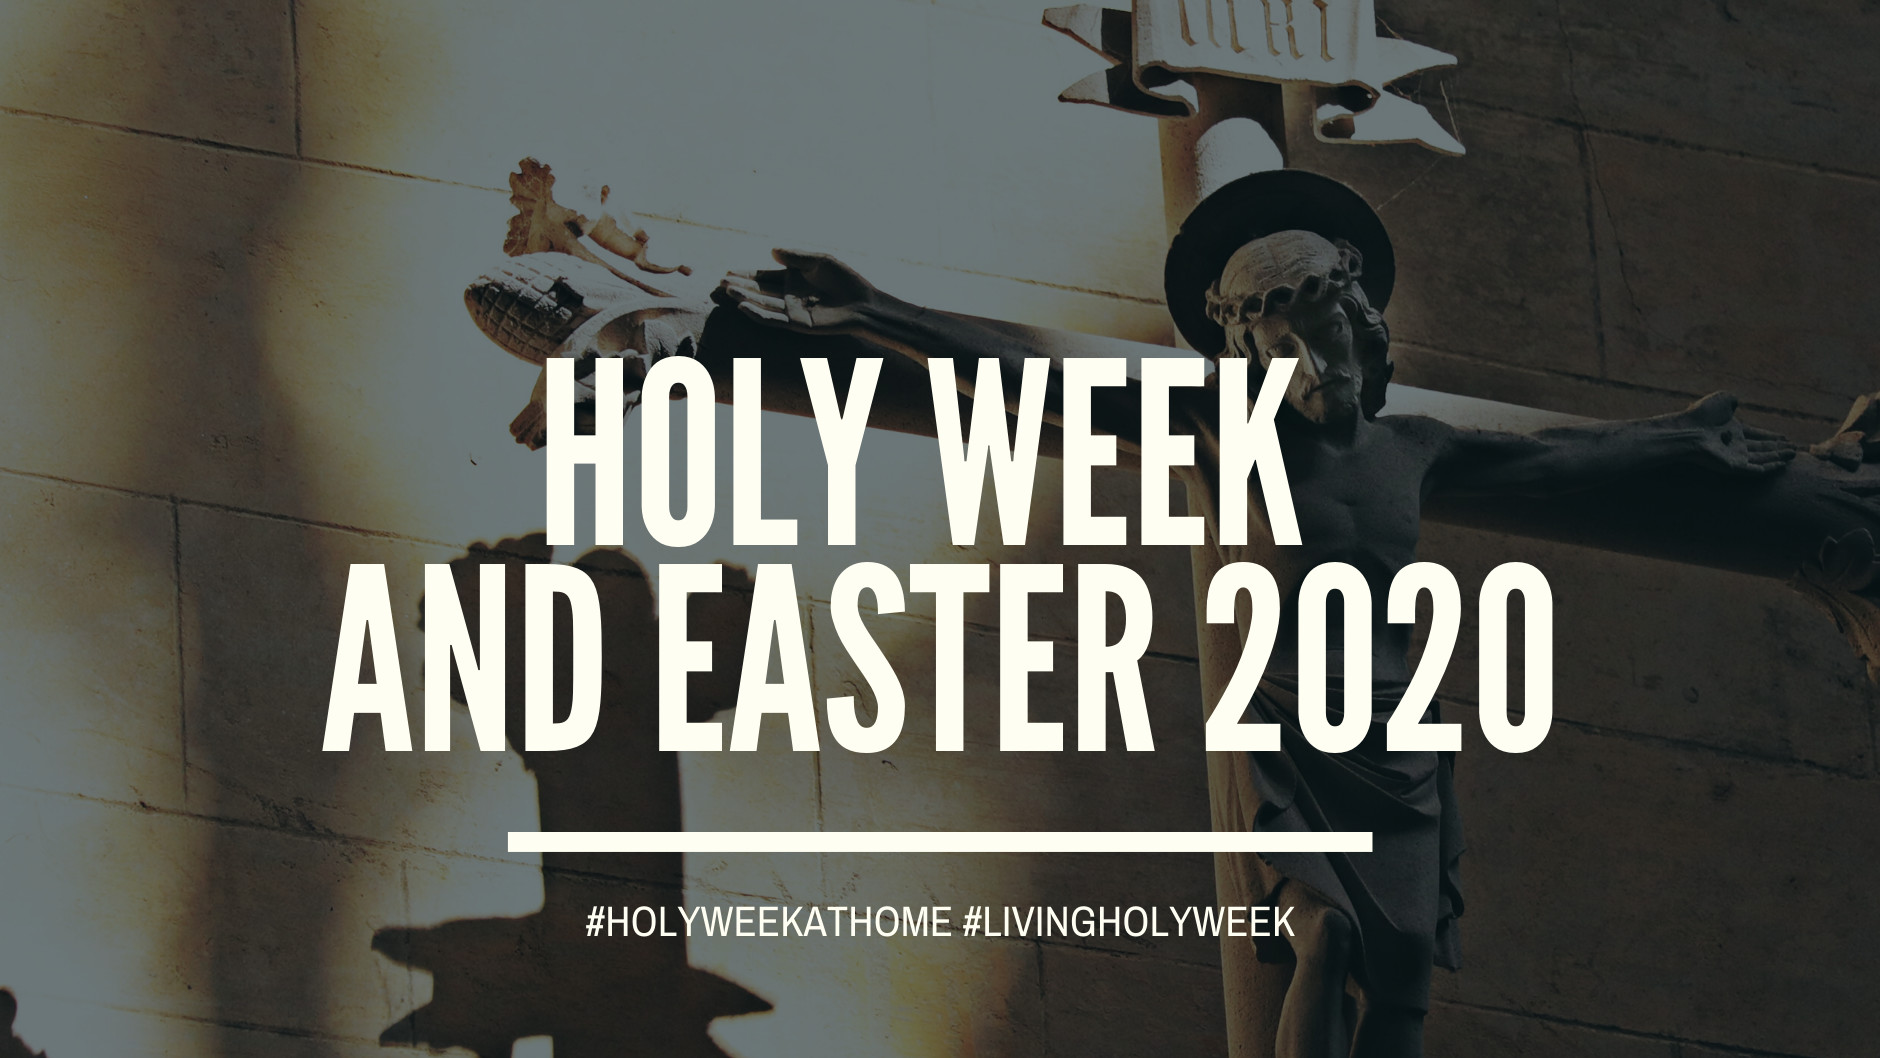 RTÉ broadcasting output of liturgies during Holy Week 2020